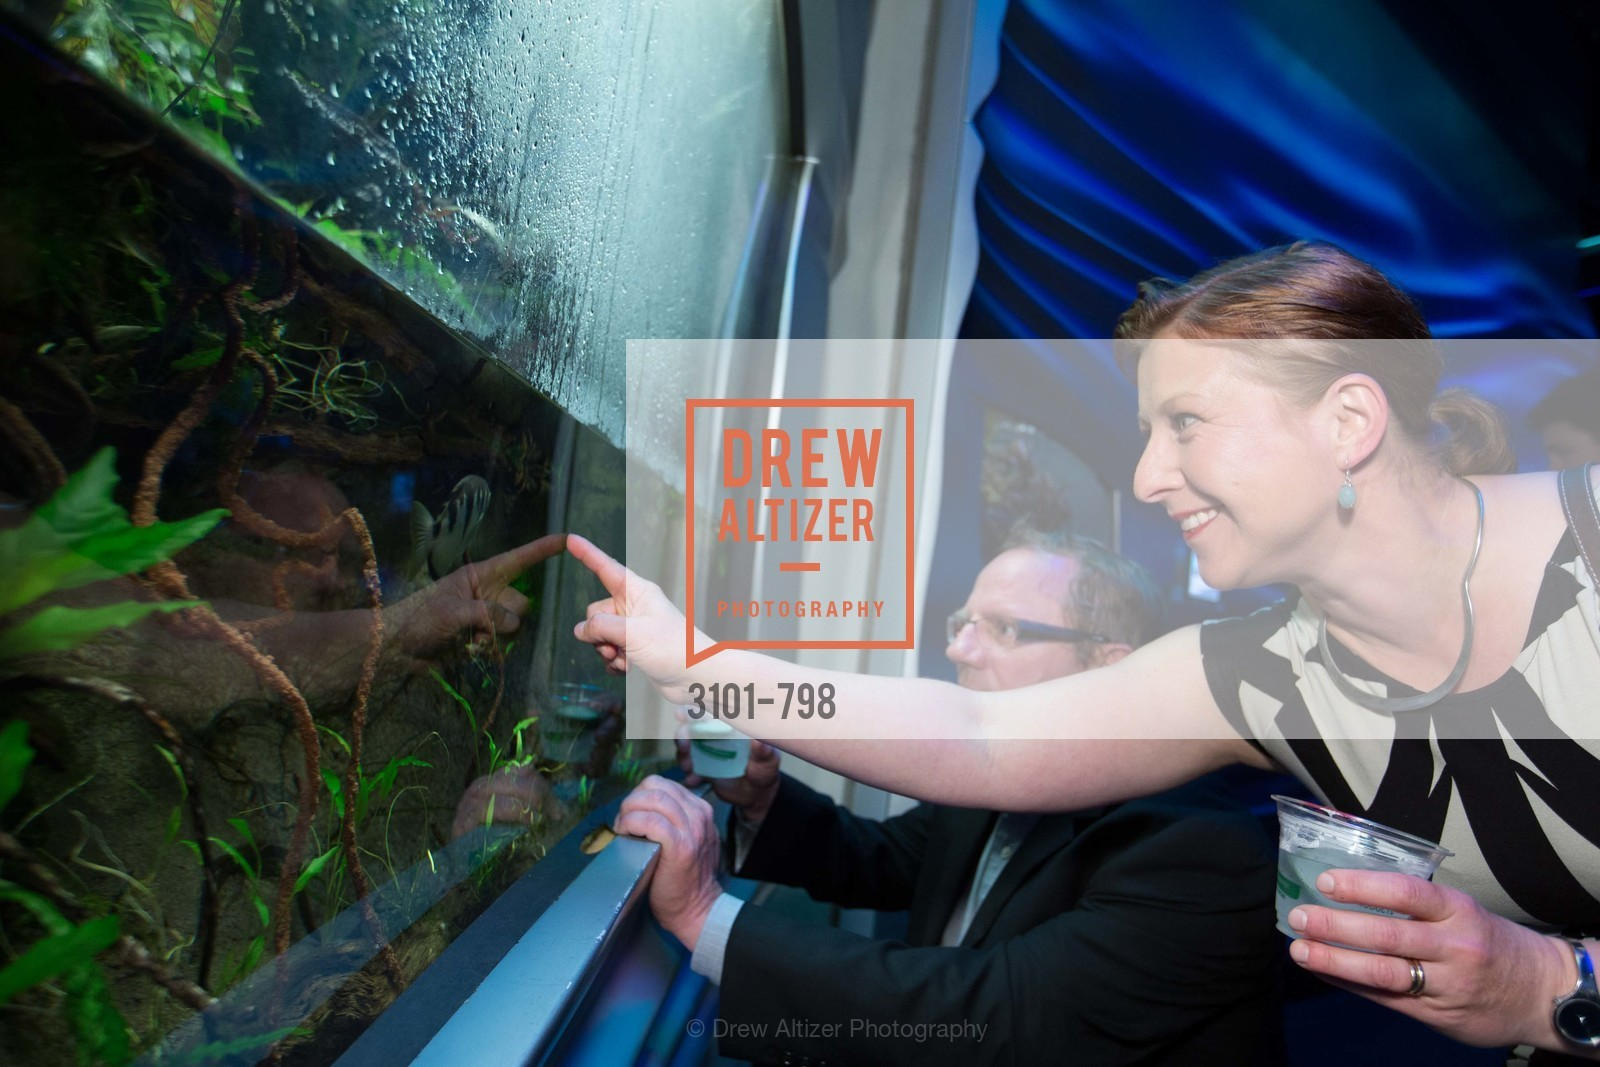 Extras, CALIFORNIA ACADEMY OF SCIENCES - Big Bang Gala 2015, April 24th, 2015, Photo,Drew Altizer, Drew Altizer Photography, full-service event agency, private events, San Francisco photographer, photographer California